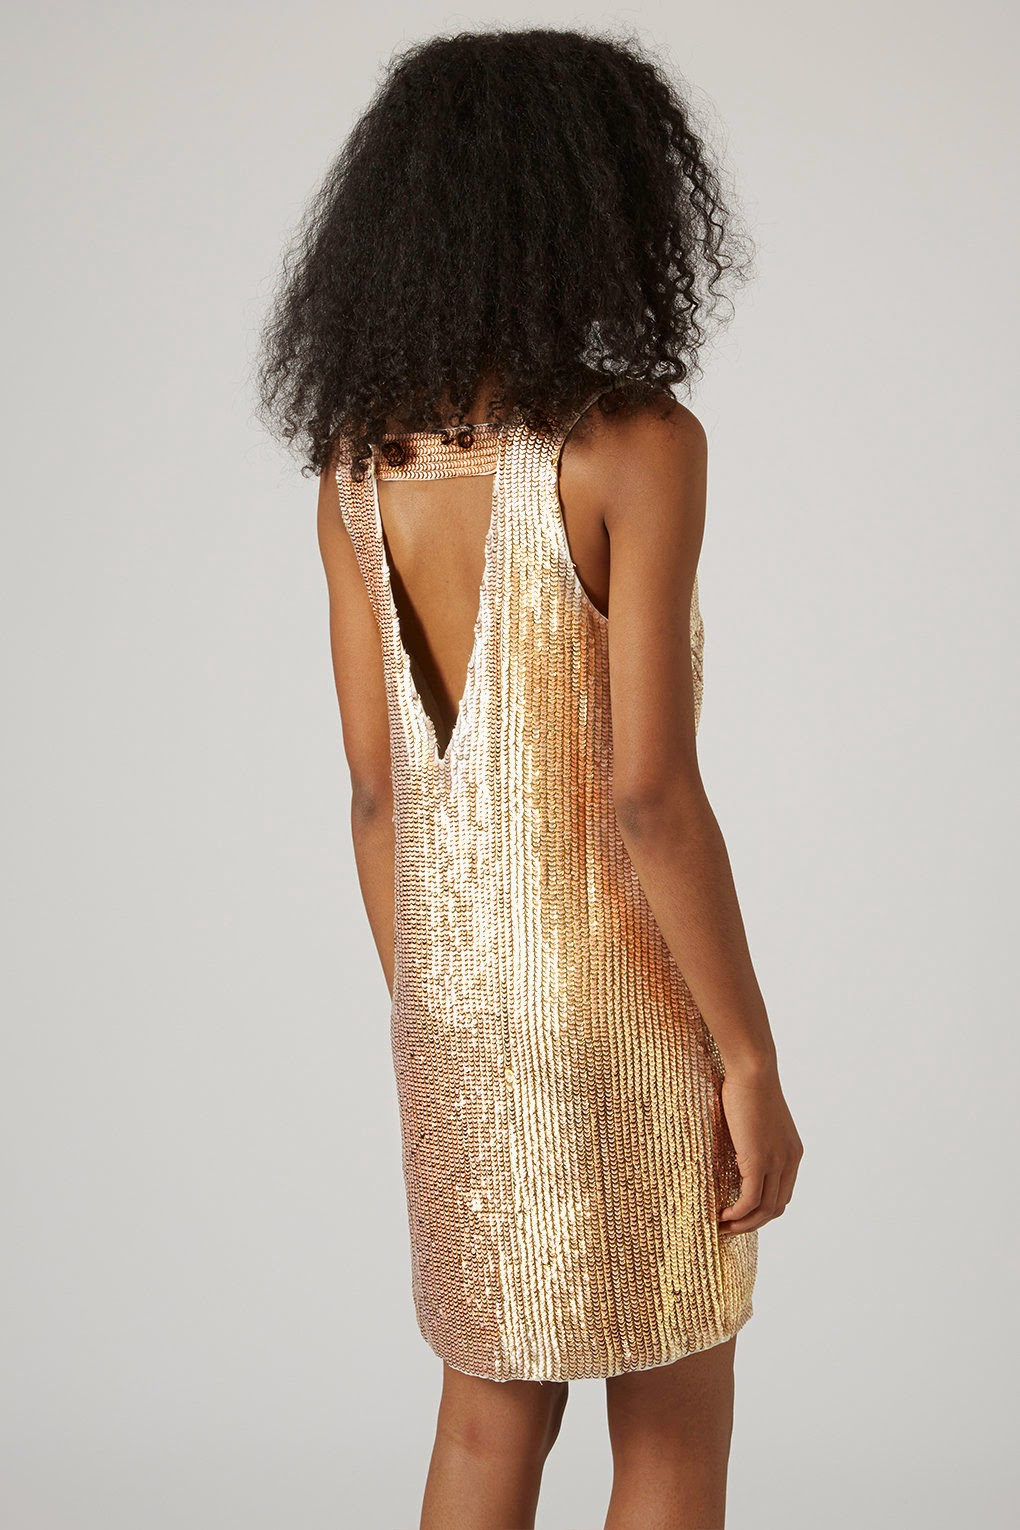 gold sequin dress with back detail, gold sequin dress topshop, gold sequin dress,